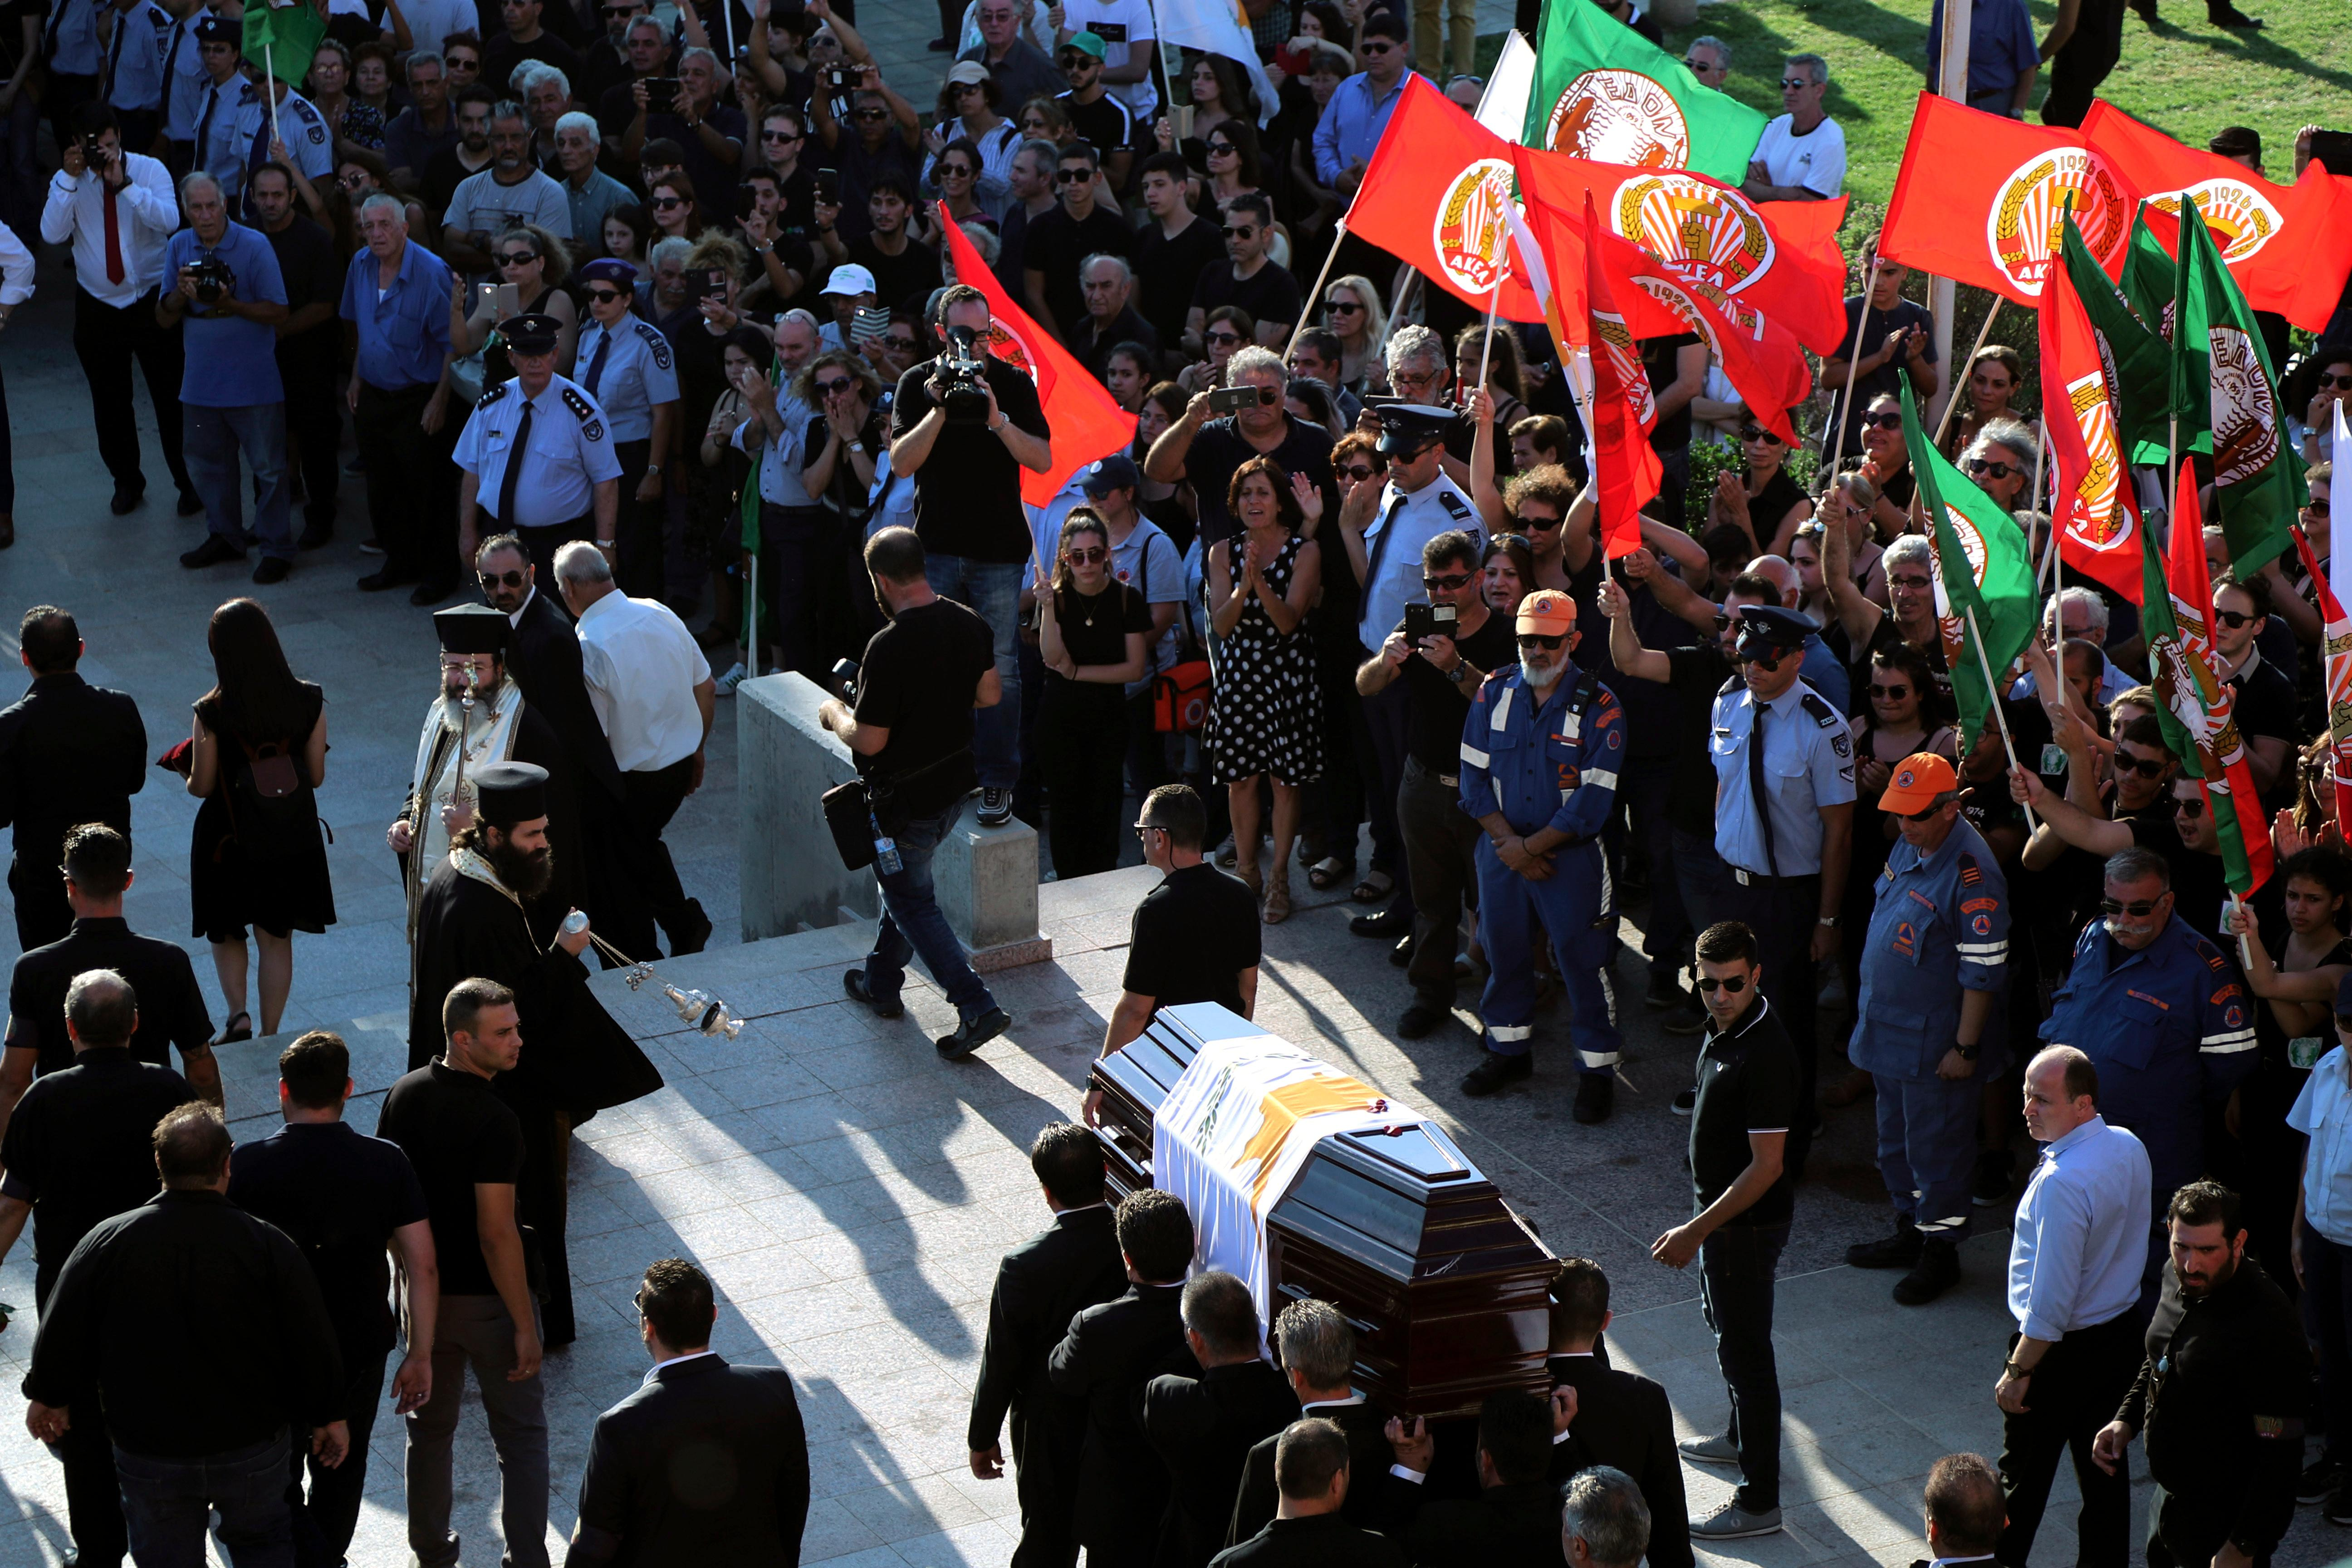 Pallbearers carry the coffin of the former Cyprus' President Dimitris Christofias, as people wave flags of communist party (AKEL) during his state funeral at the Orthodox Christian Church of the Lord's Wisdom in capital Nicosia, Cyprus, Tuesday, June 25, 2019. (AP Photo/Petros Karadjias)